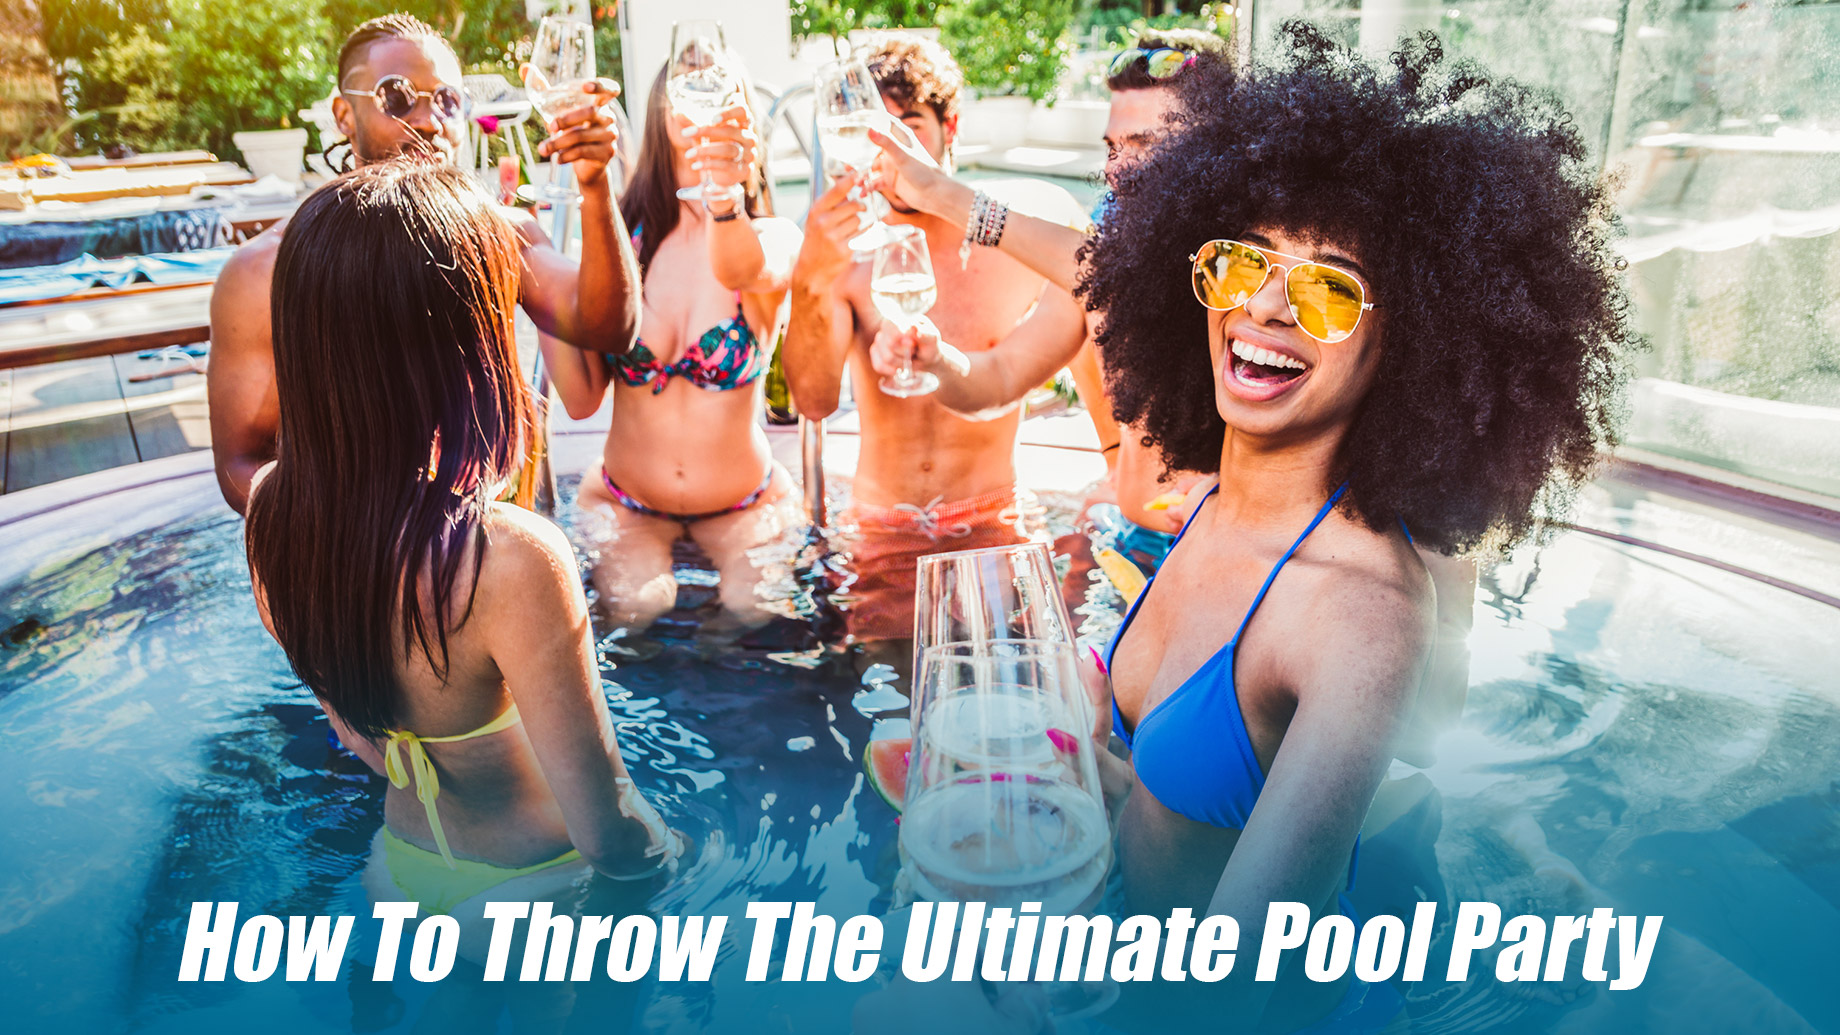 How To Throw The Ultimate Pool Party